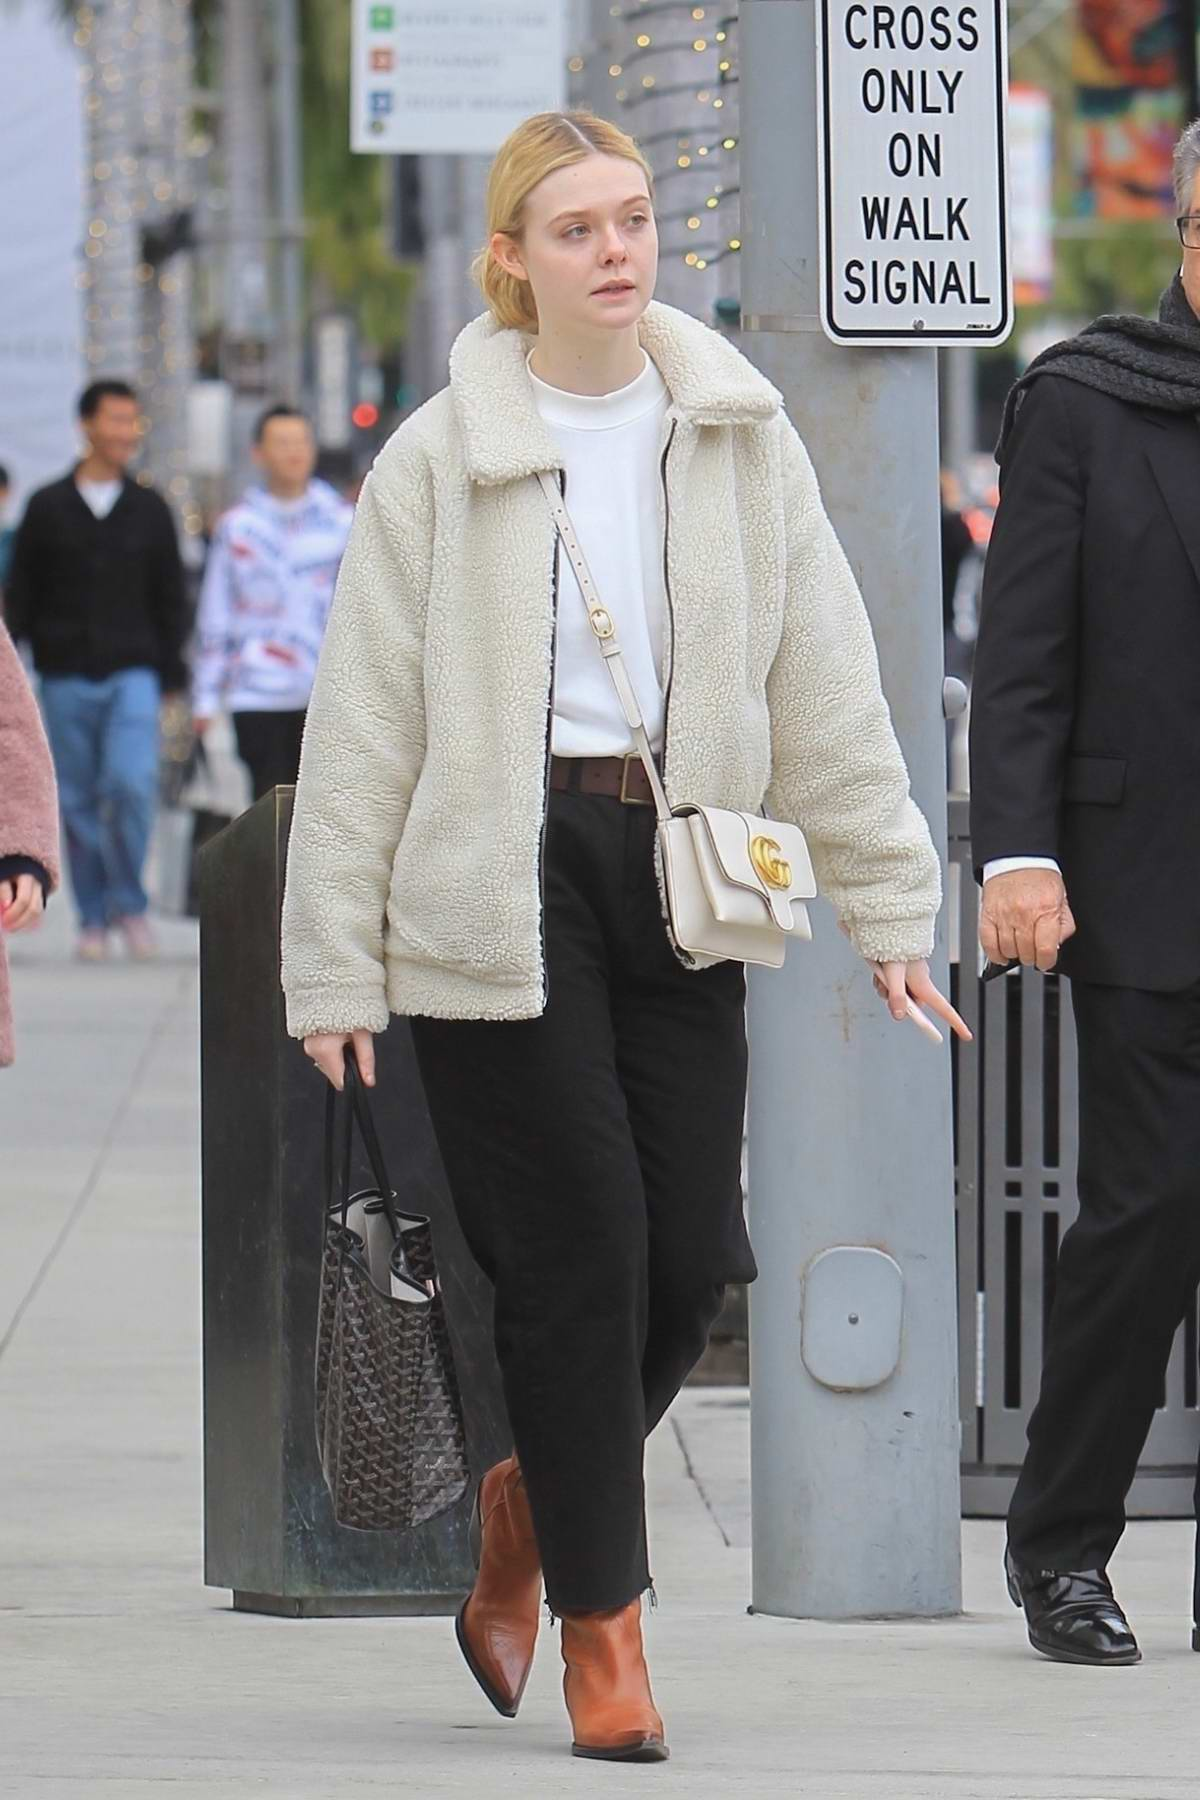 Elle Fanning rocks an off-white teddy jacket while out for some last-minute Christmas shopping in Beverly Hills, California